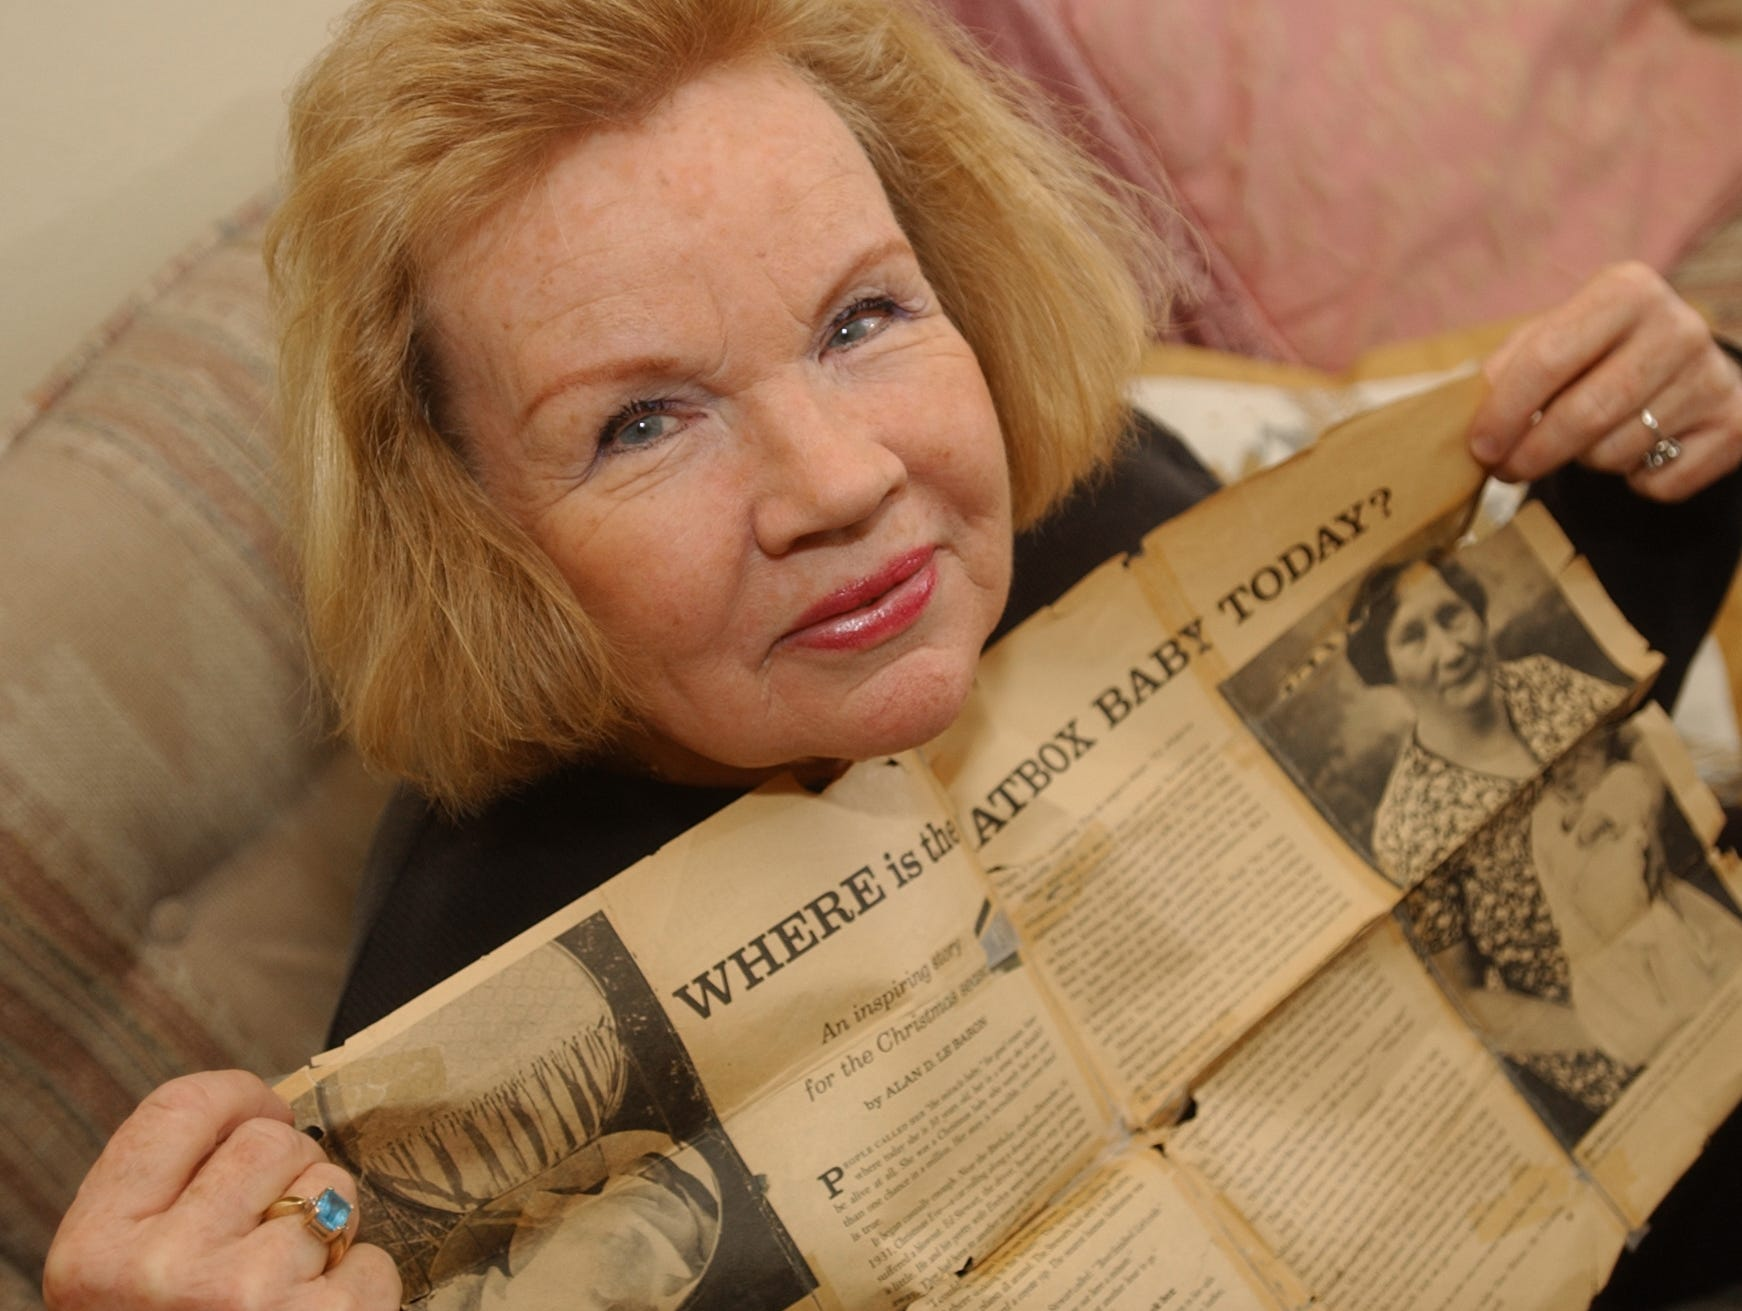 Sharon Elliott, shown in a 2003 file photo with a clipping about herself from a 1951 Parade Magazine.  As a newborn, she was left in a hat box in the desert near Superior.